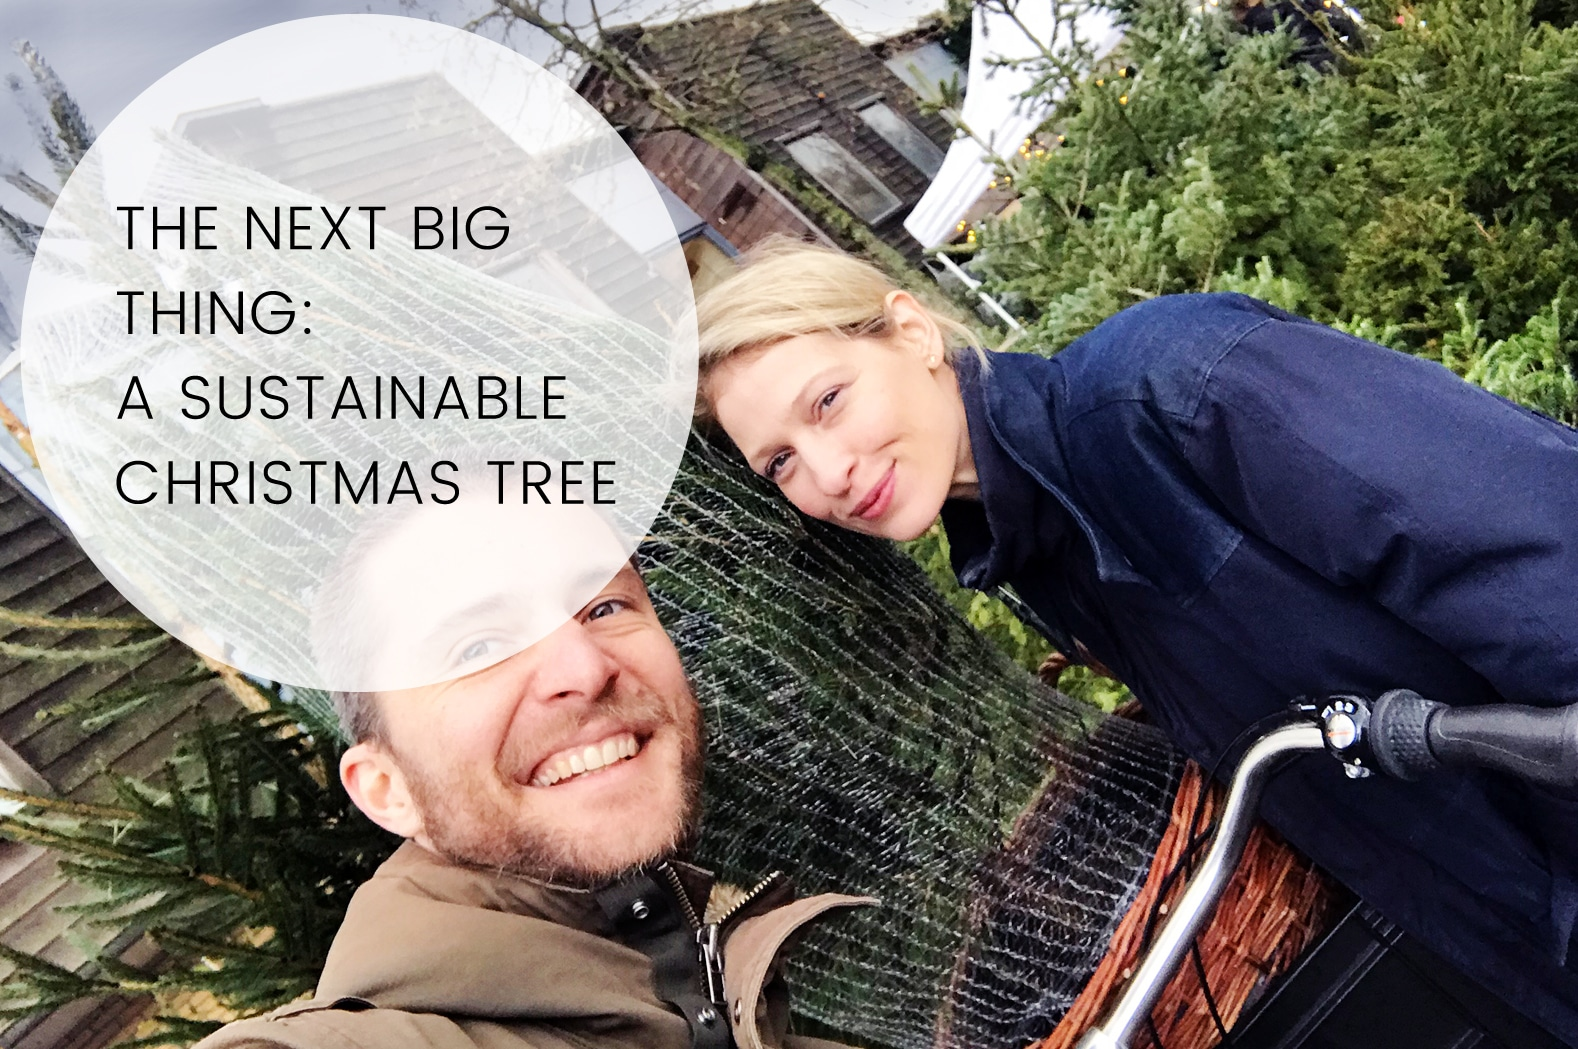 THE NEXT BIG THING: A SUSTAINABLE CHRISTMAS TREE